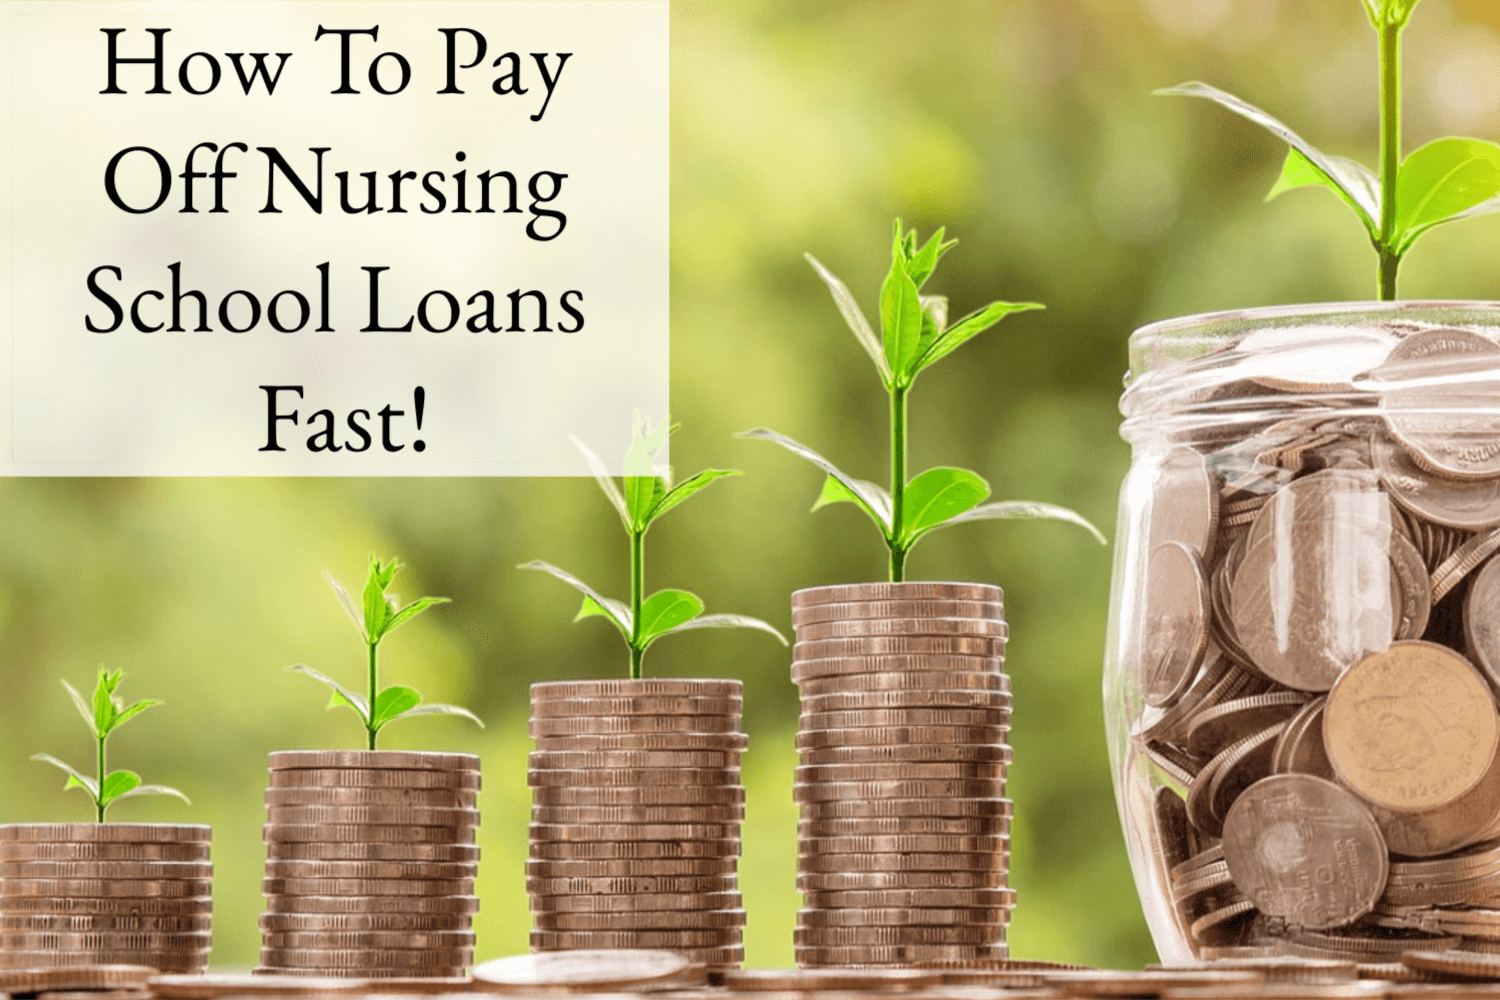 How to pay off nursing school loans fast!